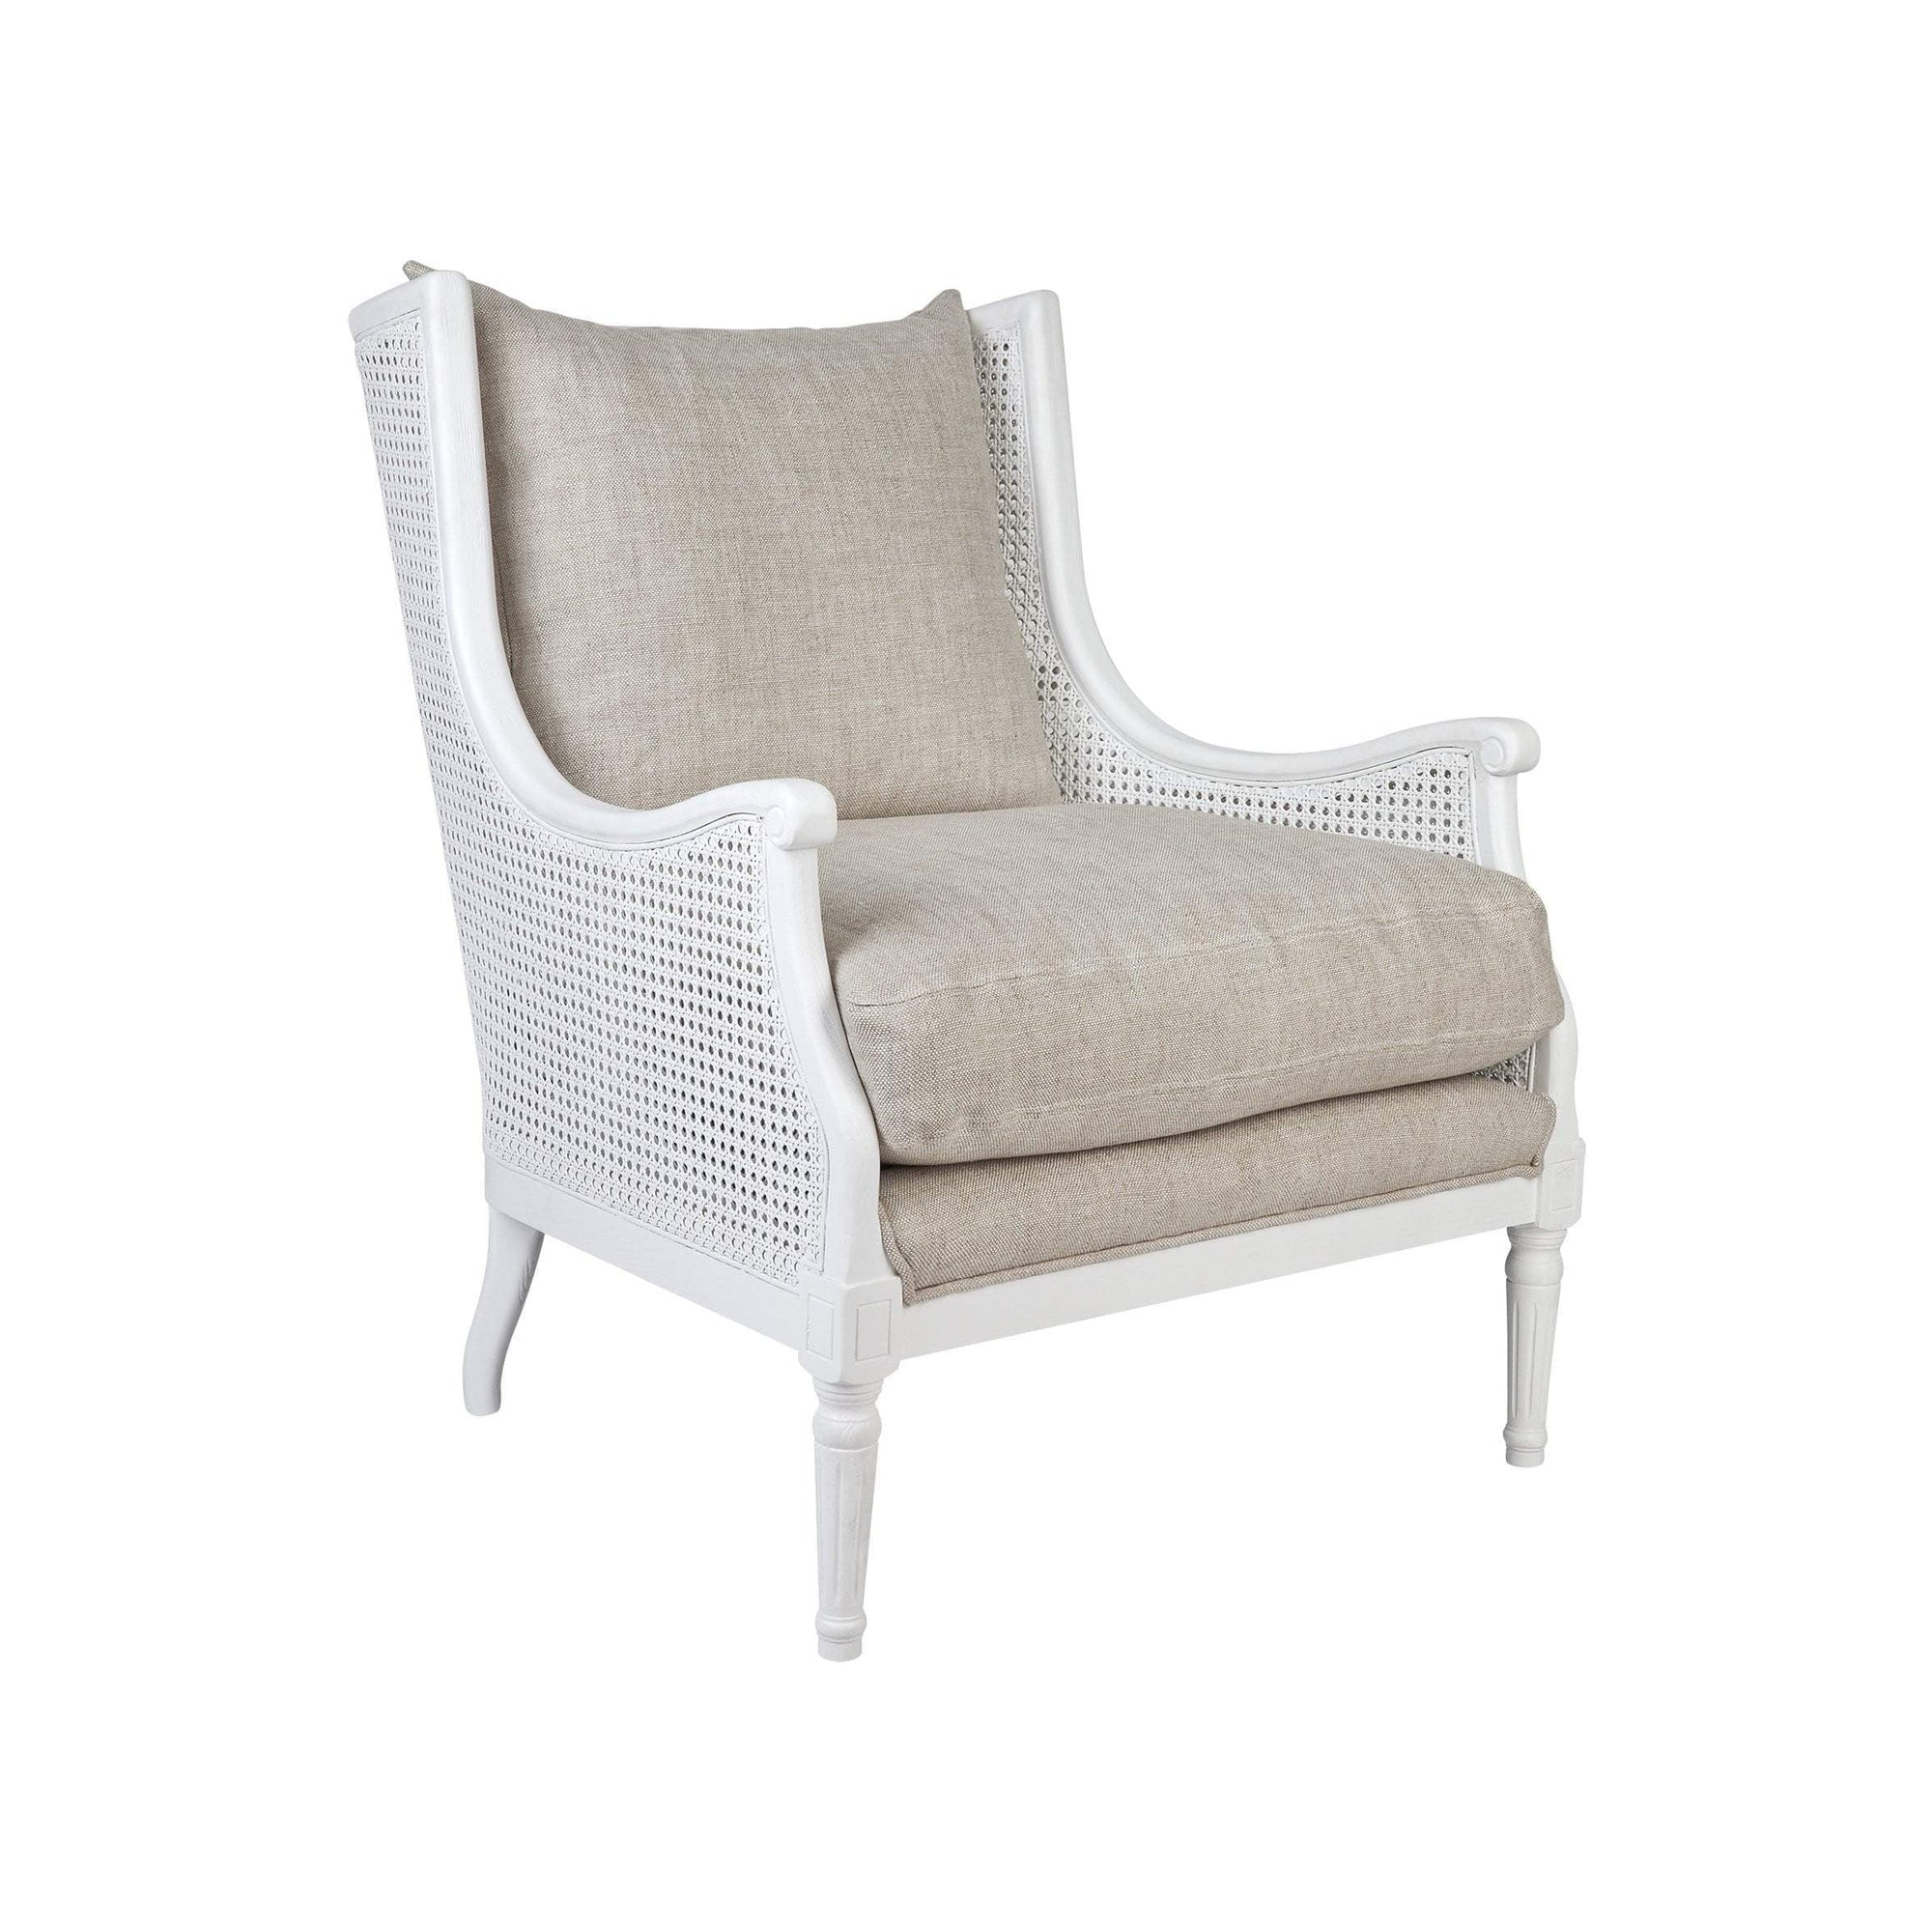 Havana Cane Arm Chair White